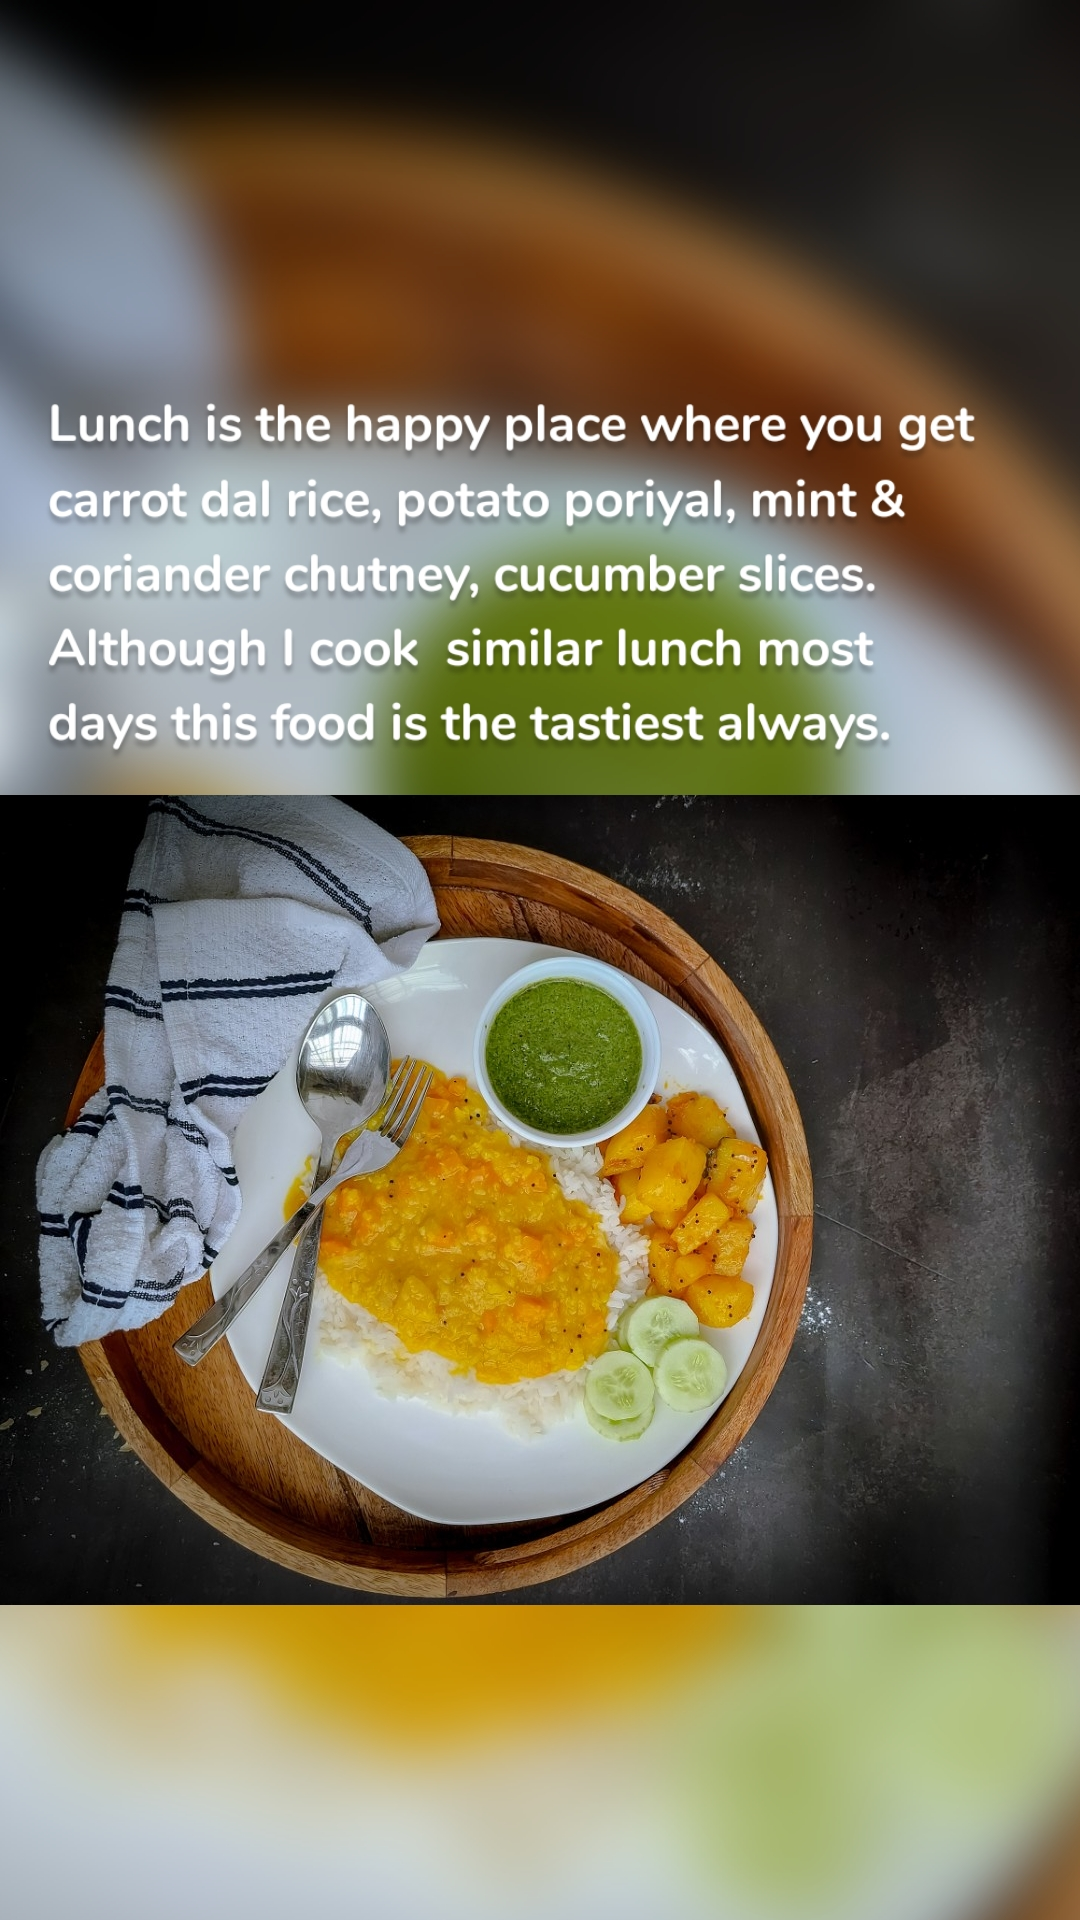 Lunch is the happy place where you get carrot dal rice, potato poriyal, mint & coriander chutney, cucumber slices. Although I cook  similar lunch most days this food is the tastiest always.